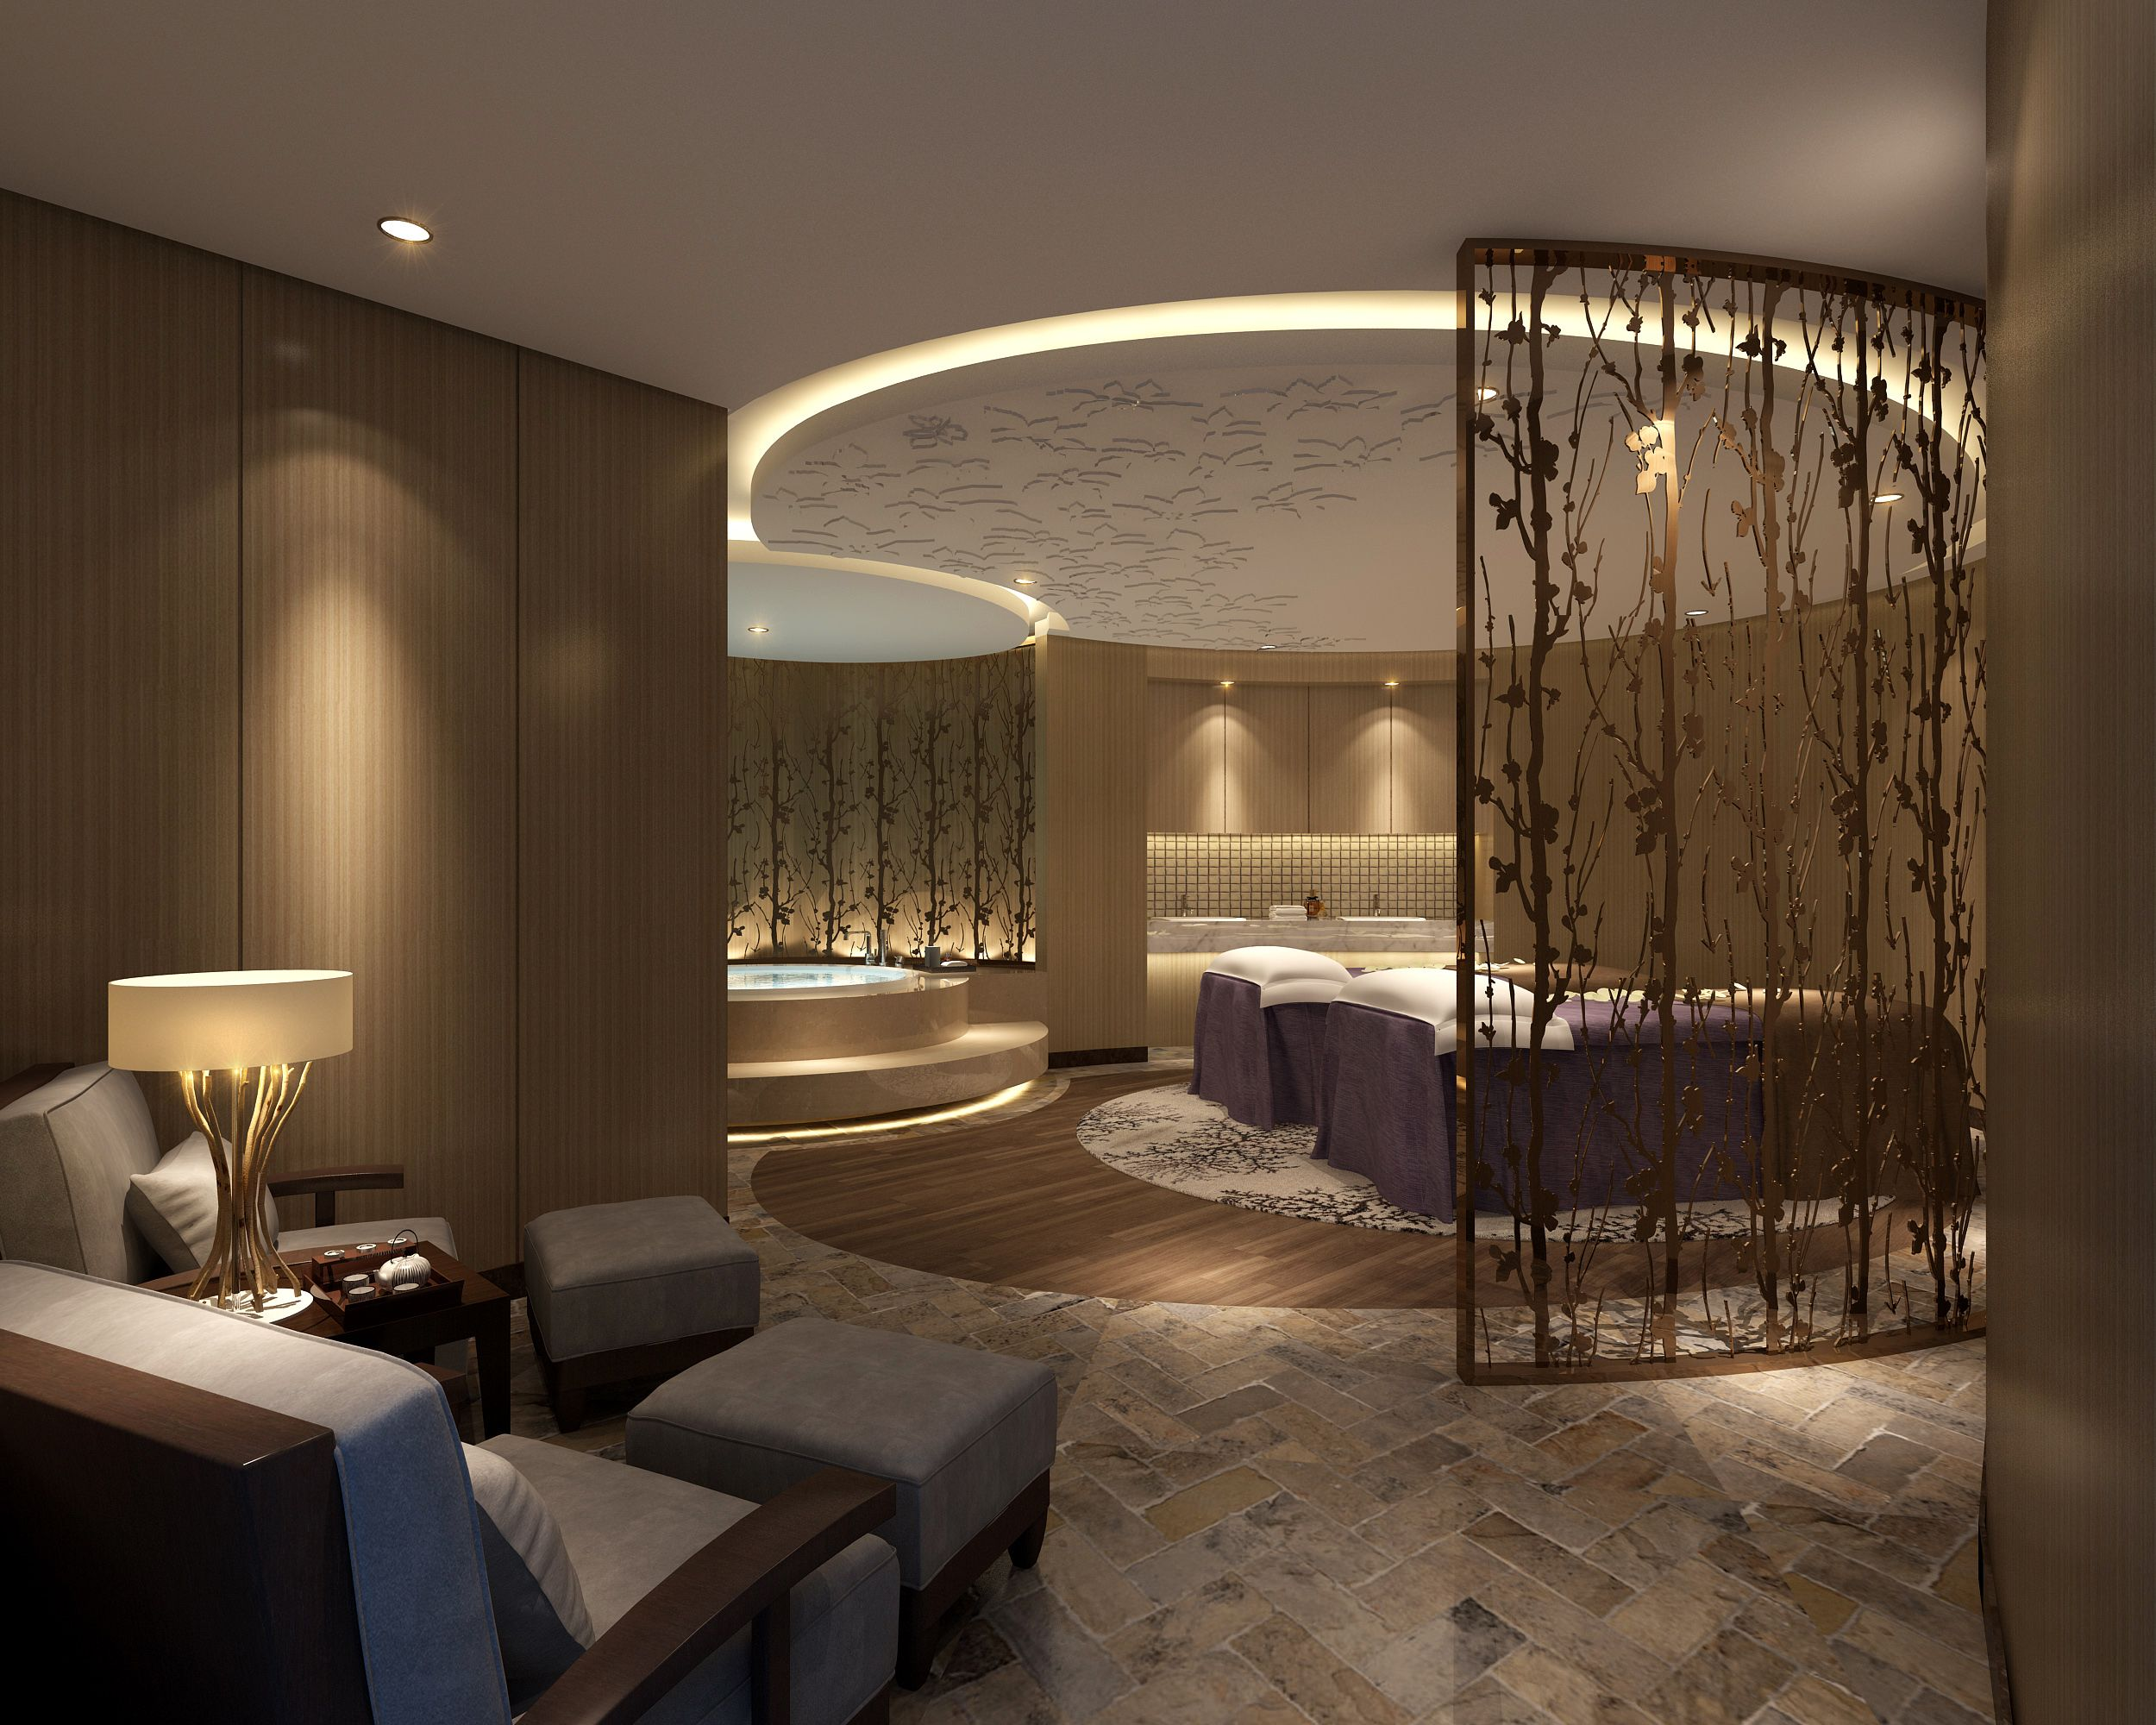 Spa Vip Treatment Room